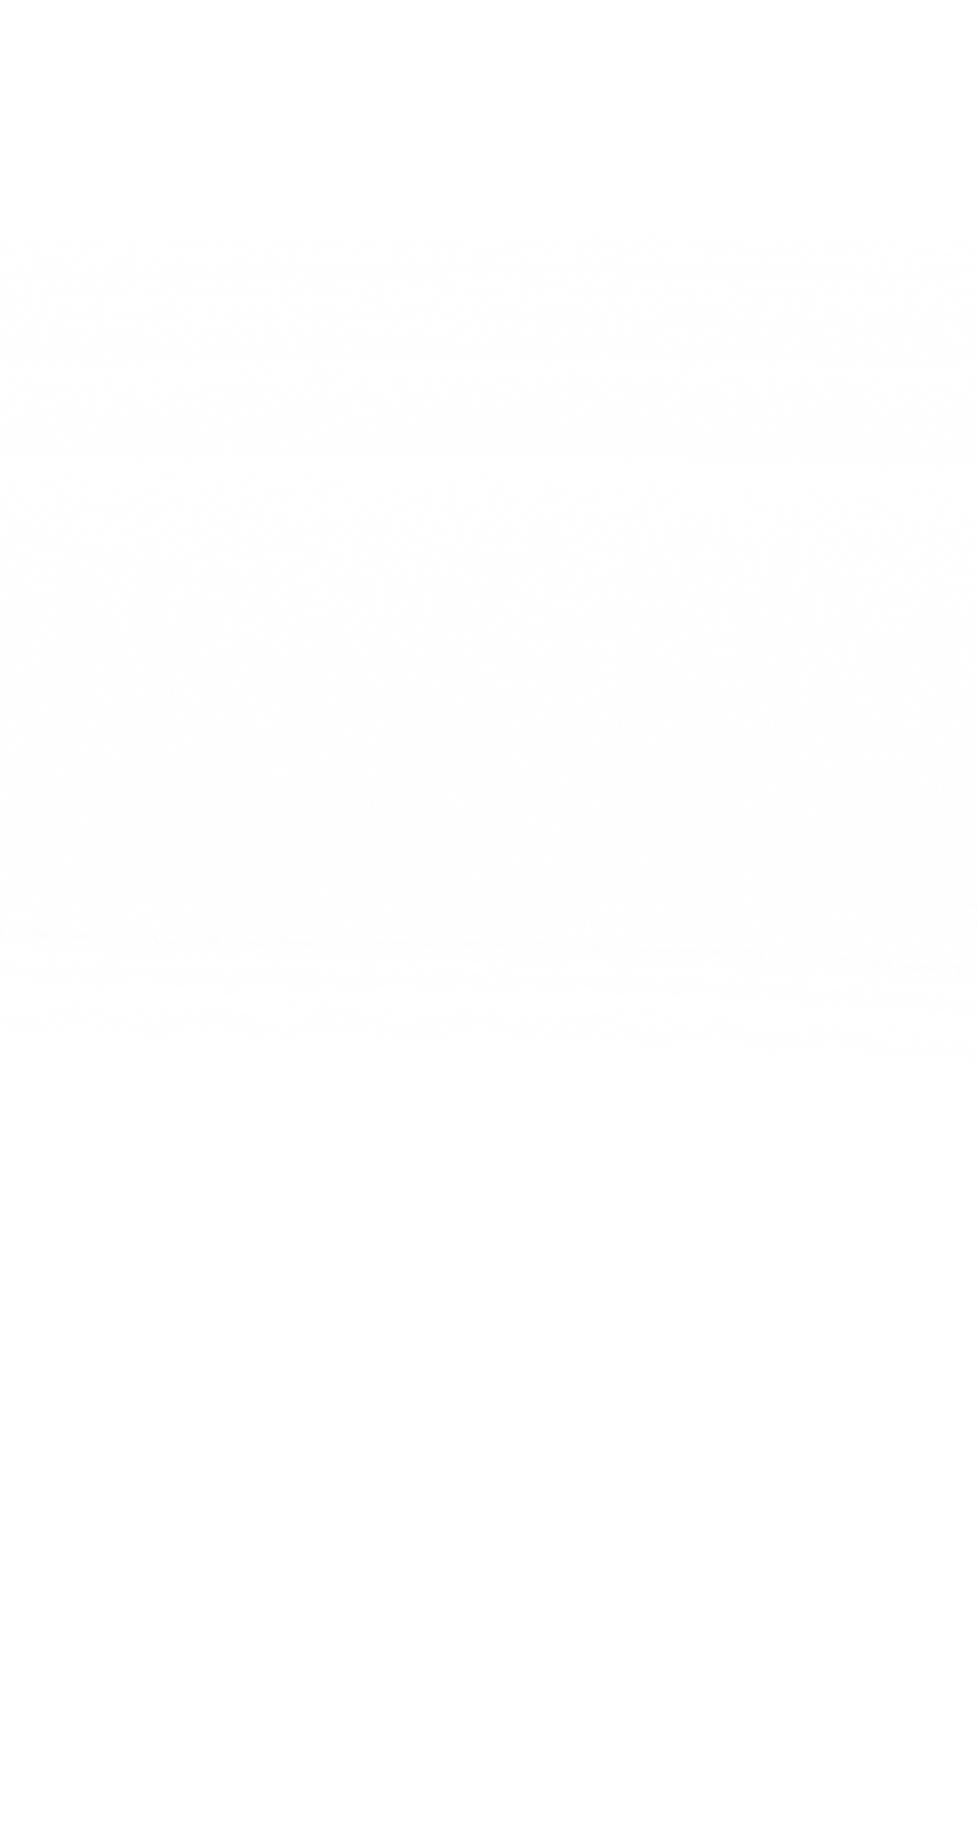 white-gradient-background large.png